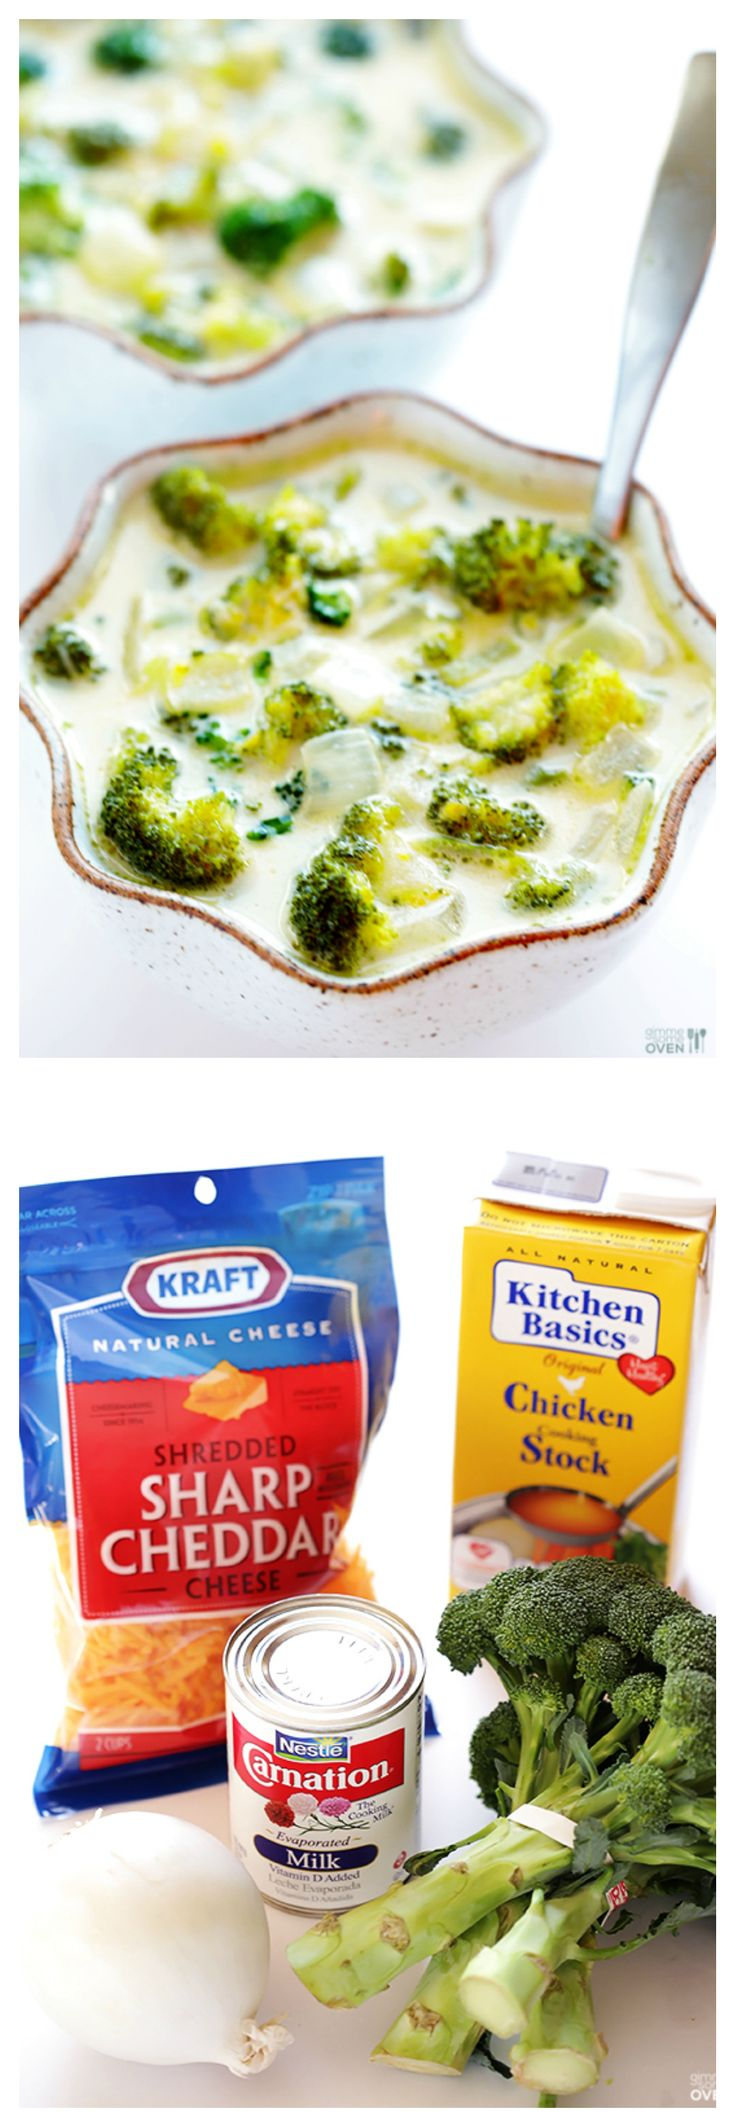 5-Ingredient Broccoli Cheese Soup -- super easy to make, and so warm and comforting! | gimmesomeoven.com #soup